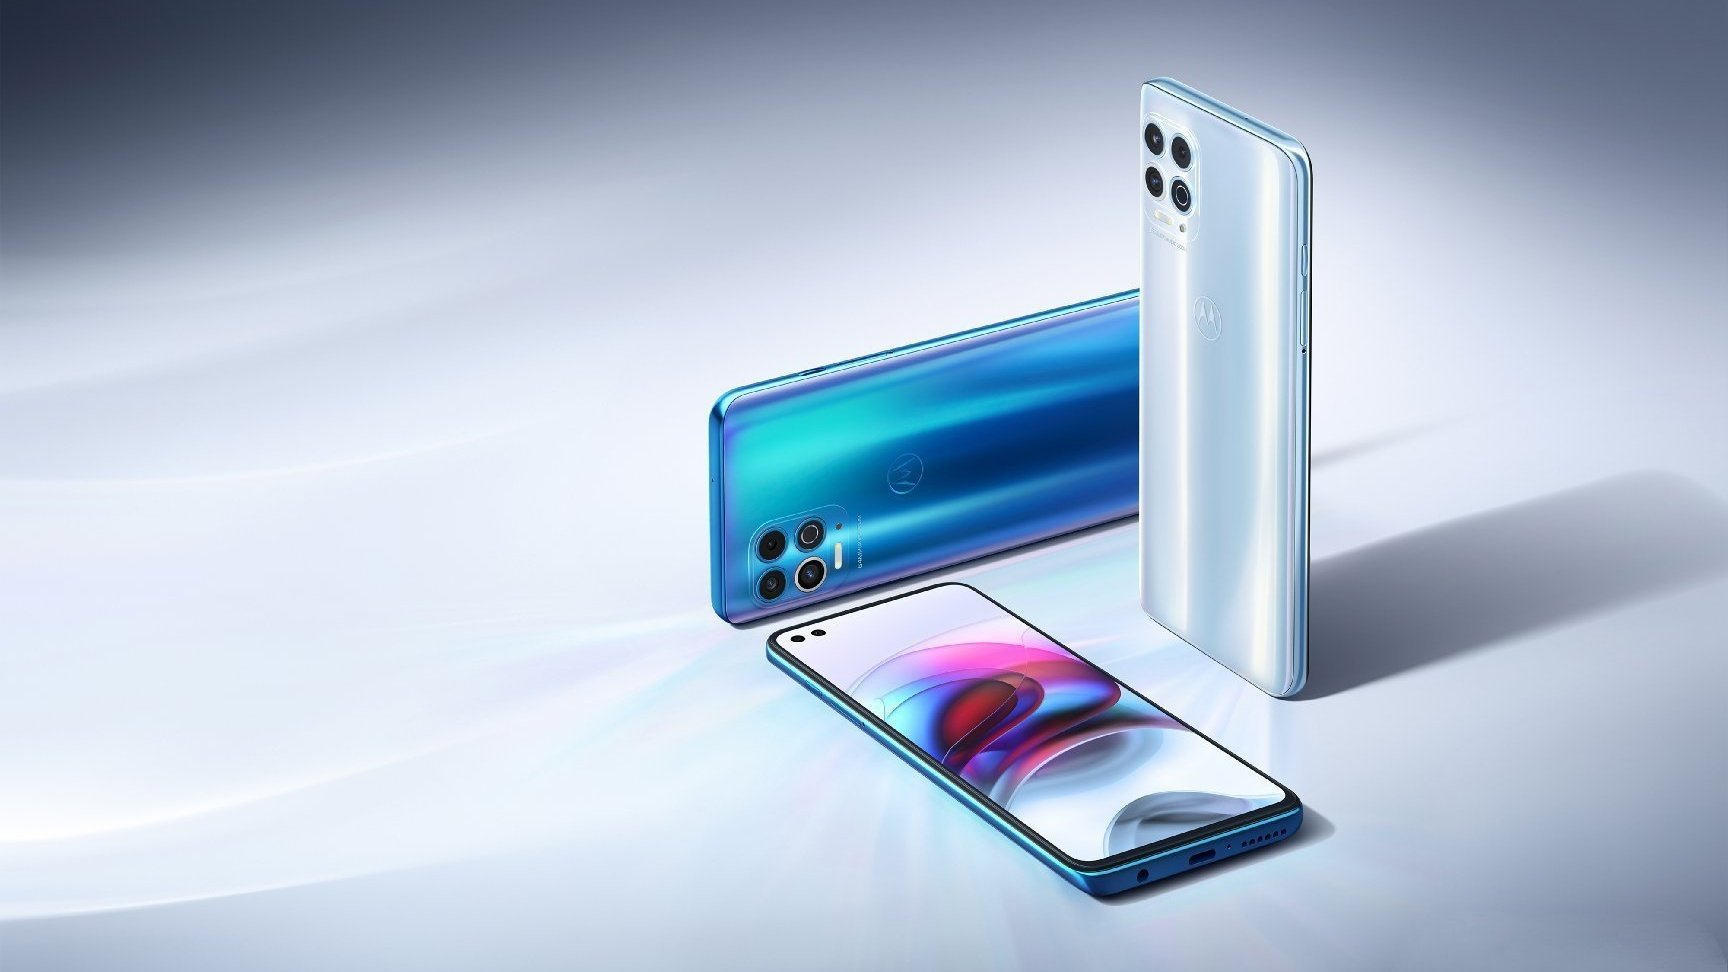 Motorola Working On A New Smartphone Which Is Capable To Charge Wirelessly Over The Air